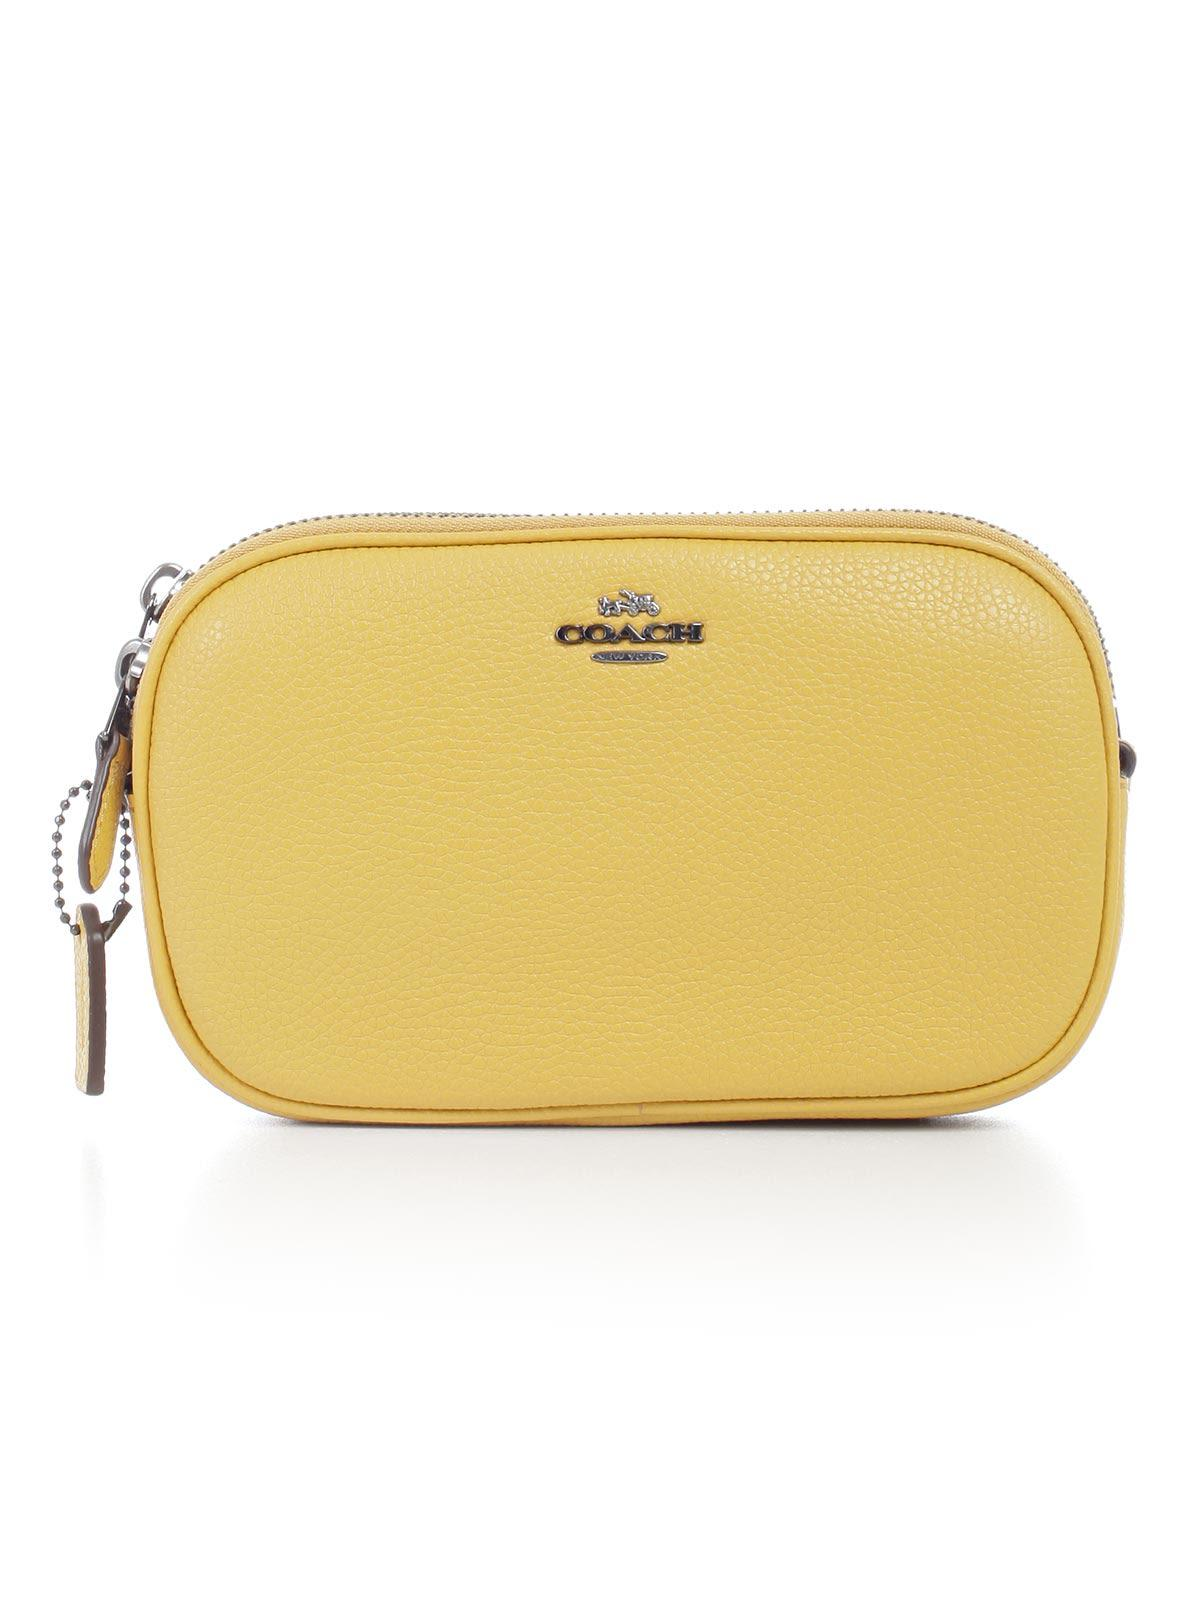 Coach Clutch In Deebv Yellow Gold